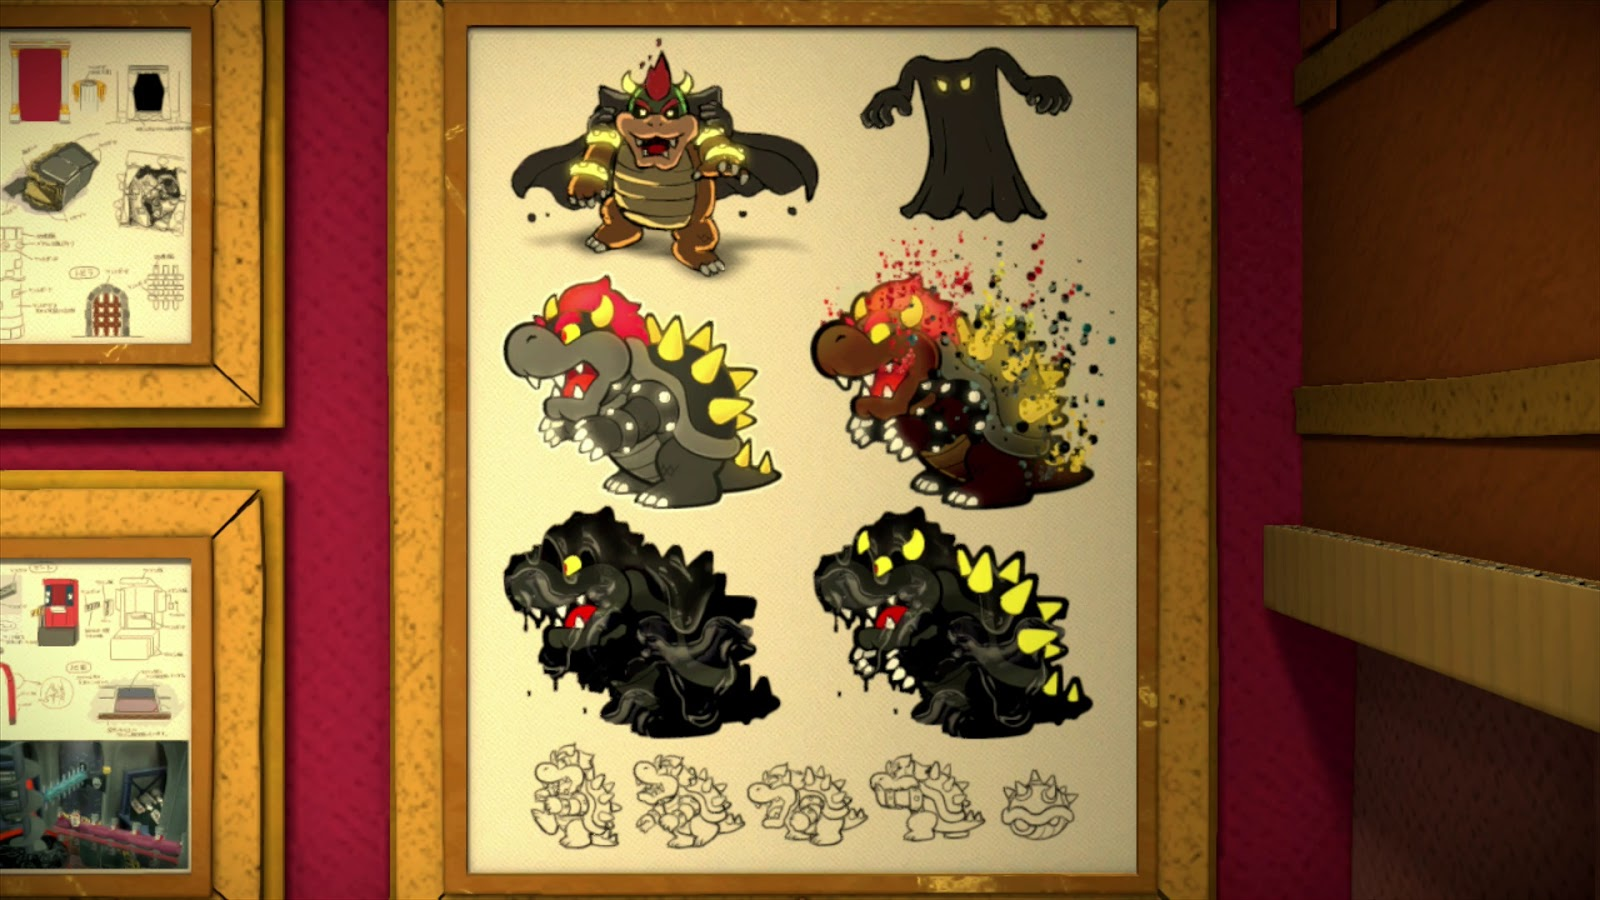 Spoiler Learn Some Curious Concept Art That Can Be Unlocked In